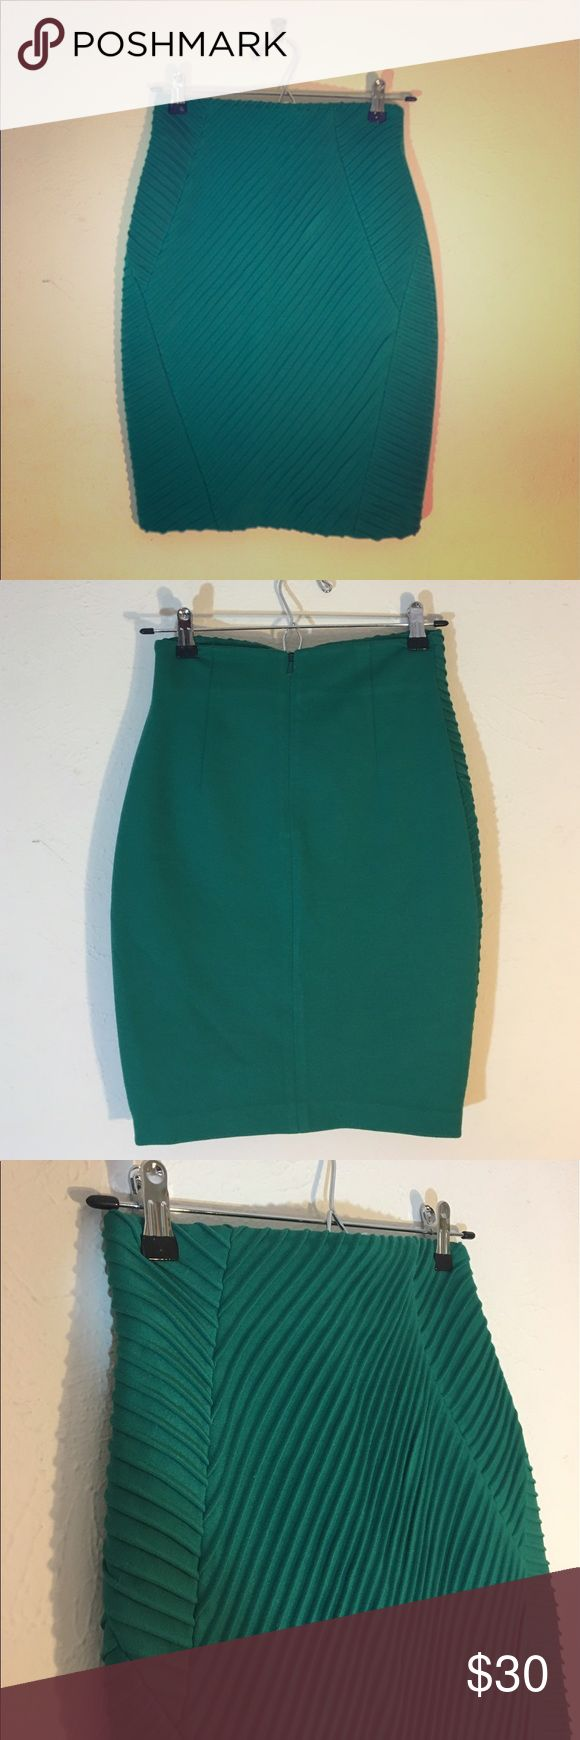 Catherine Malandrino Stretchy Green Pencil Skirt Cute stretchy fitted green pencil skirt with diagonal rubbing. Zipper in the back. Excellent condition, Lightly owned, no stains or damage.  High quality, from Nordstrom. Catherine Malandrino Skirts Pencil